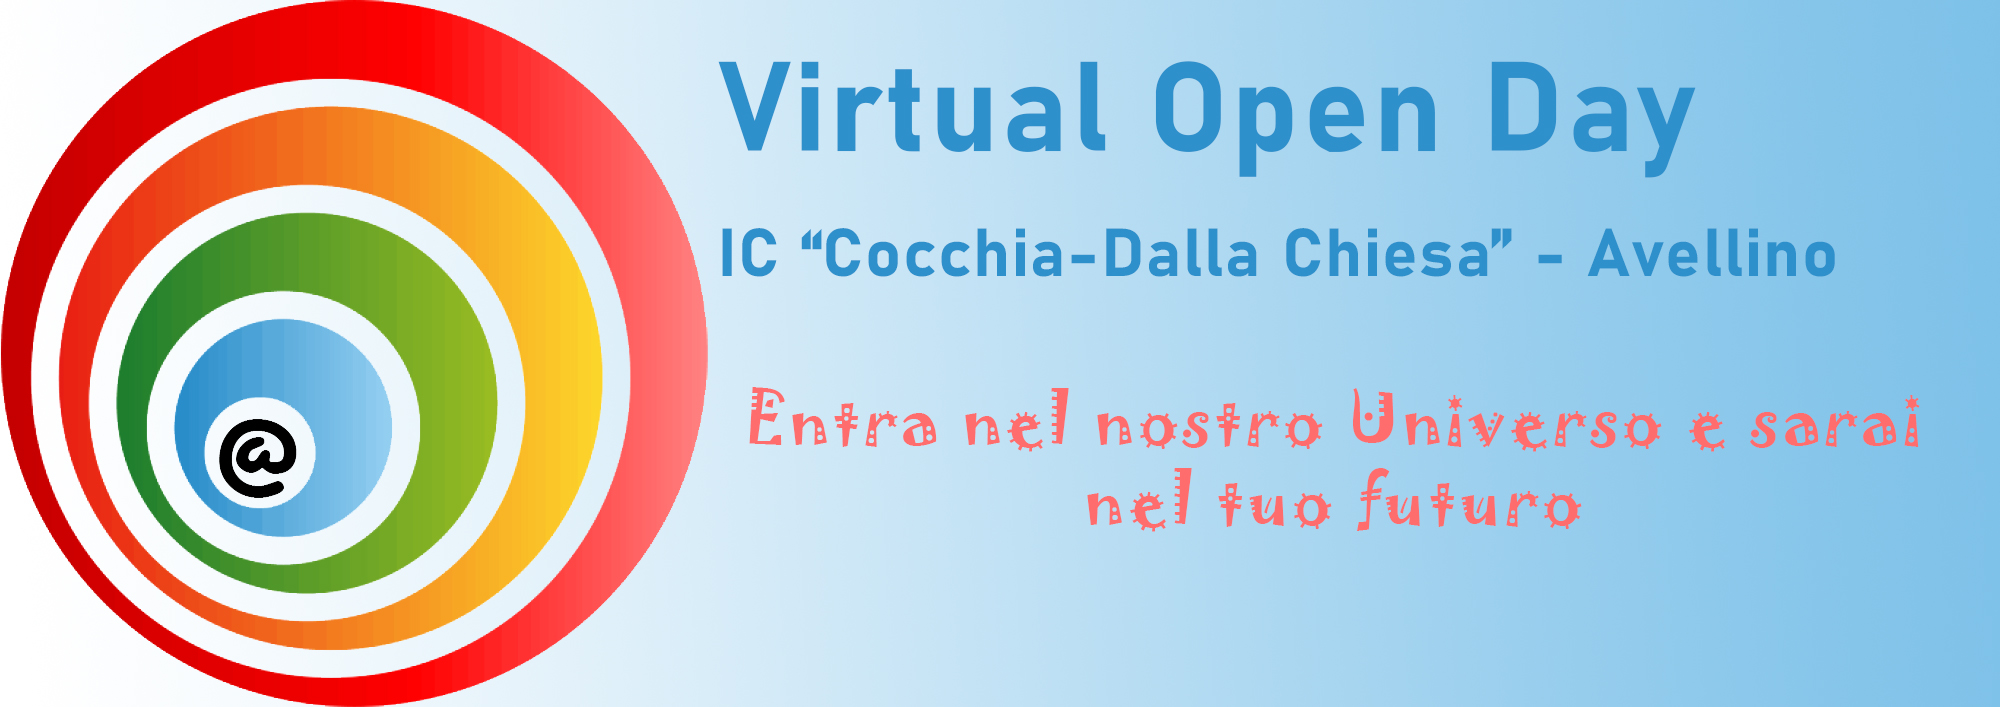 logo_Open_day.jpg